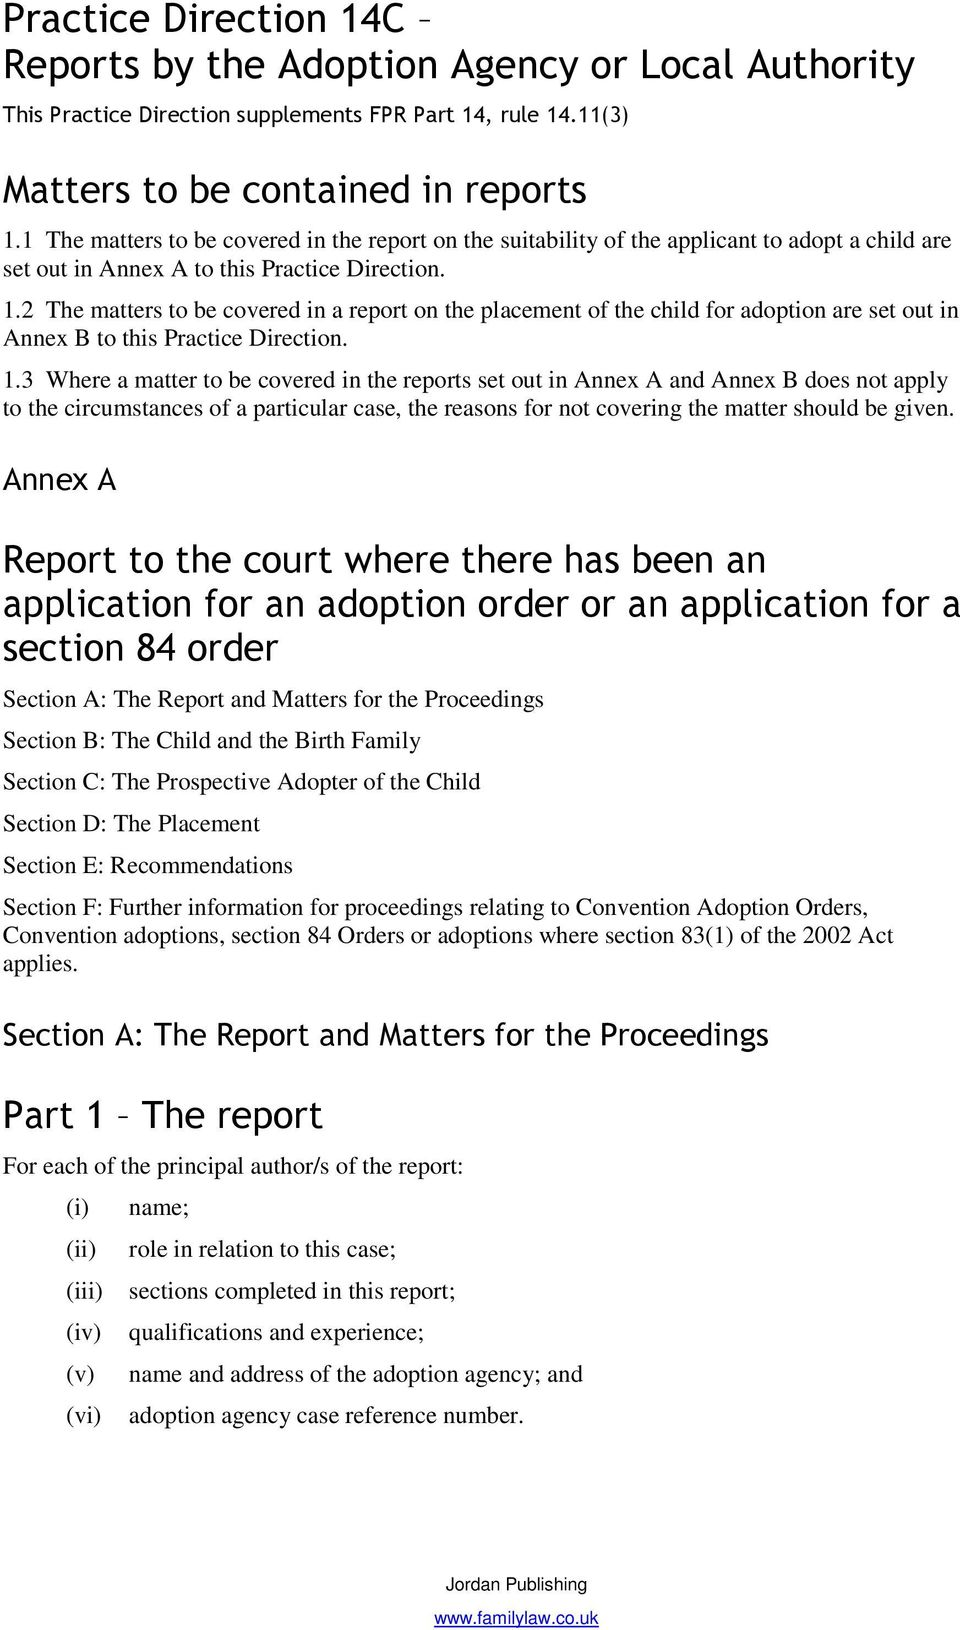 2 The matters to be covered in a report on the placement of the child for adoption are set out in Annex B to this Practice Direction. 1.